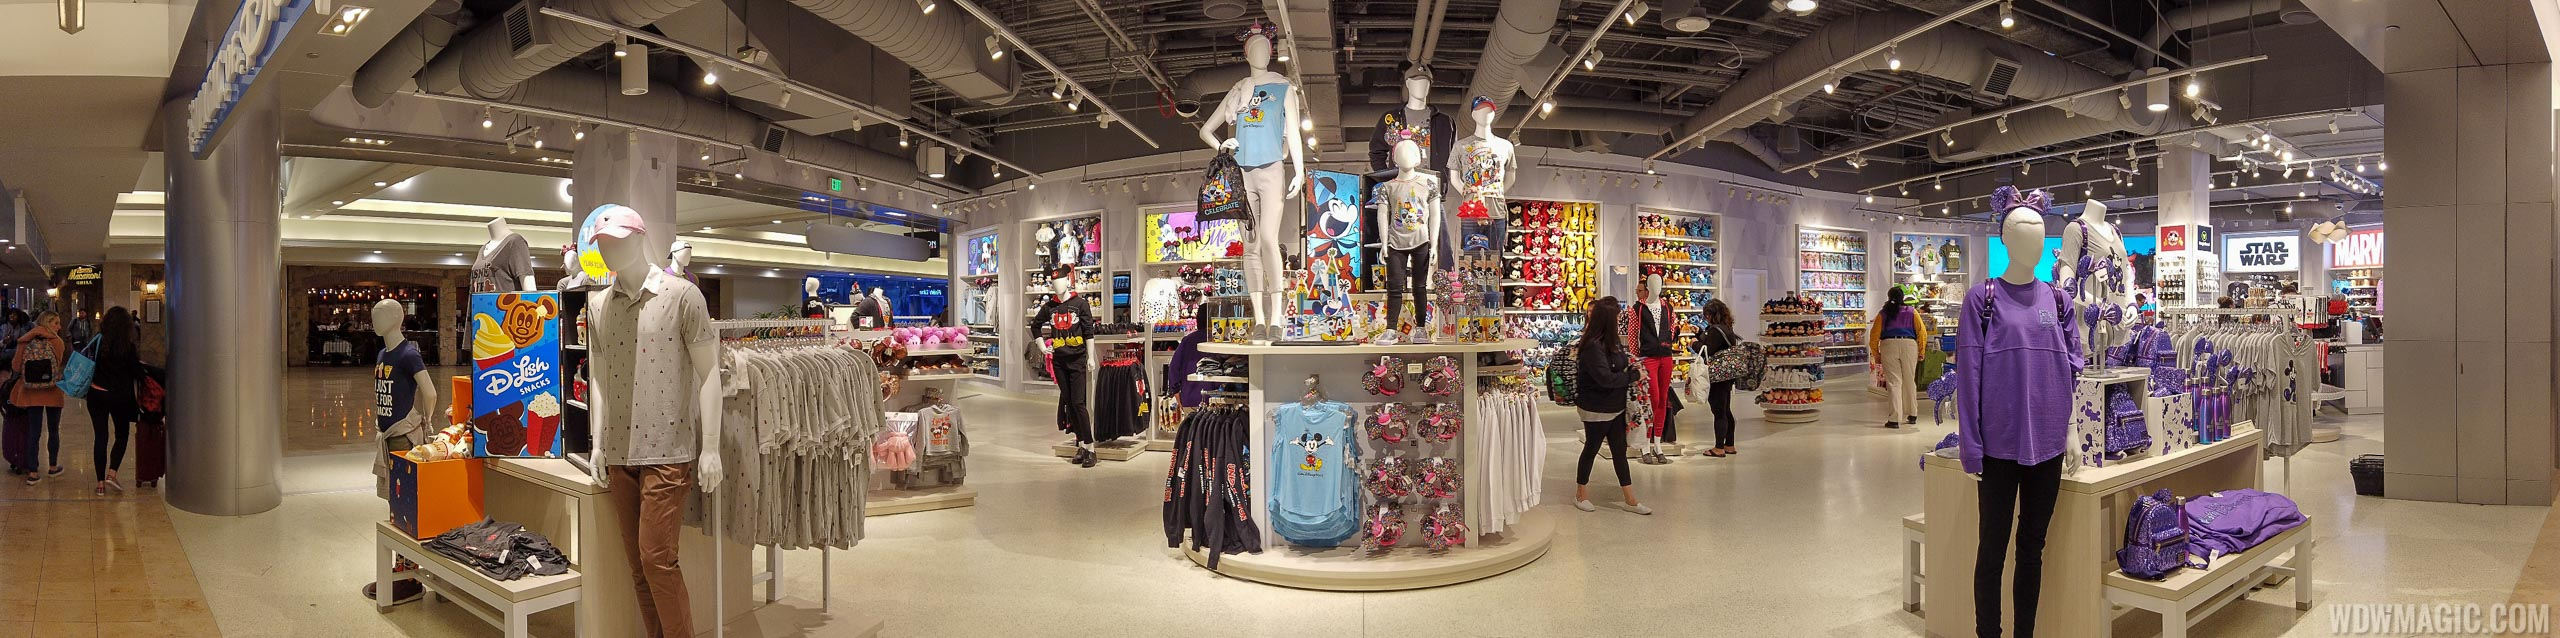 New Magic of Disney store at Orlando International Airport